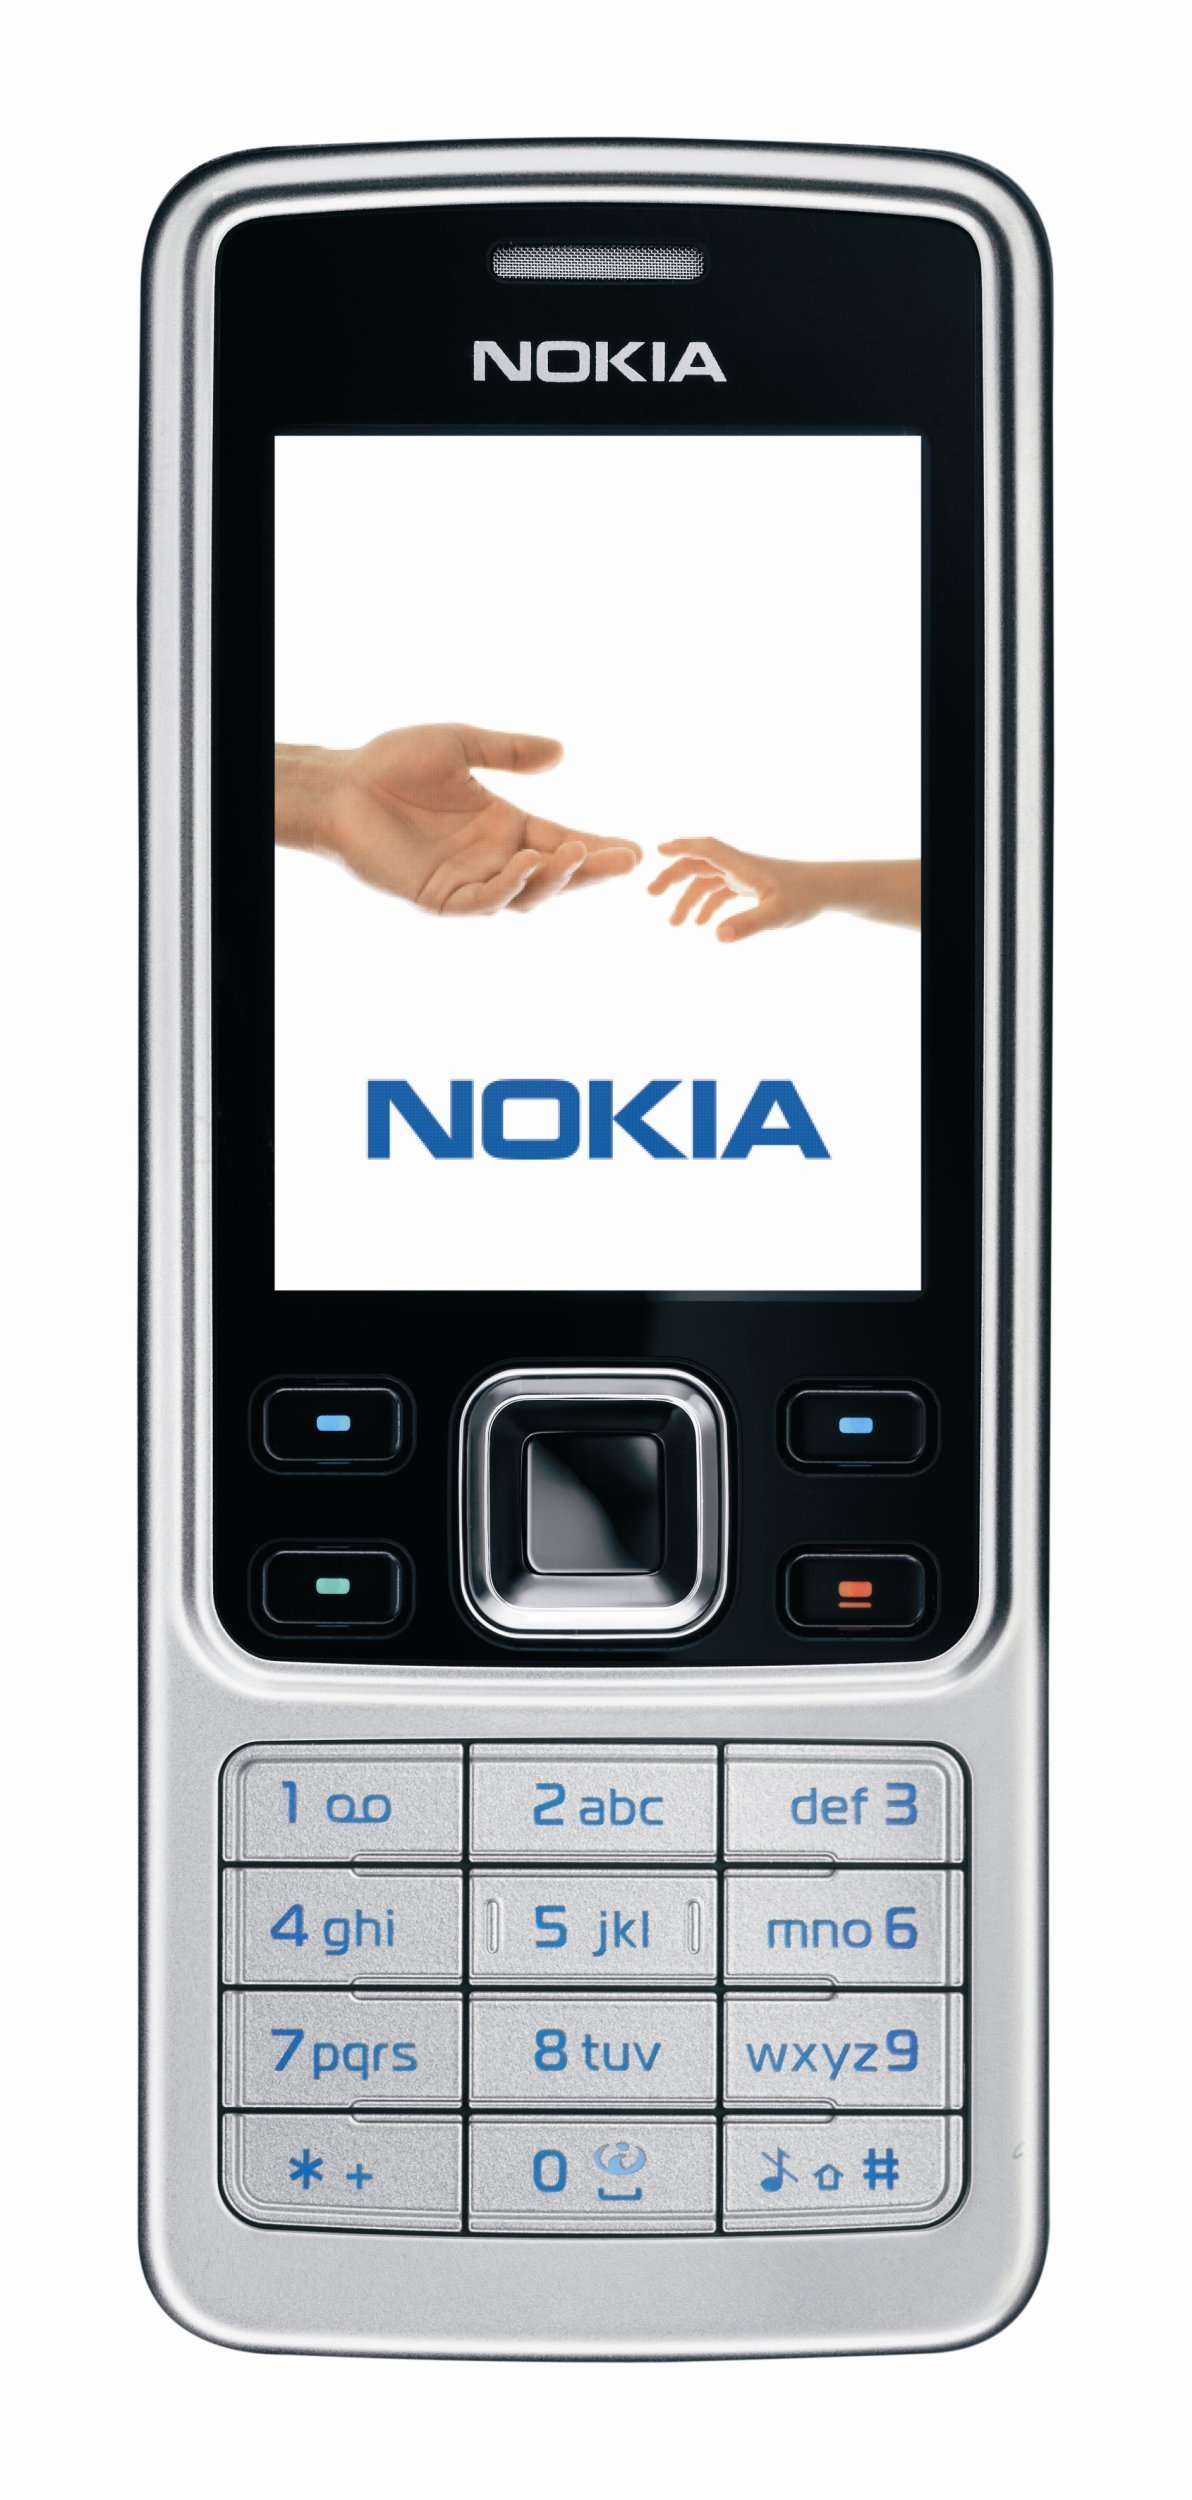 Nokia 6300 Unlocked Triband Camera Business Phone